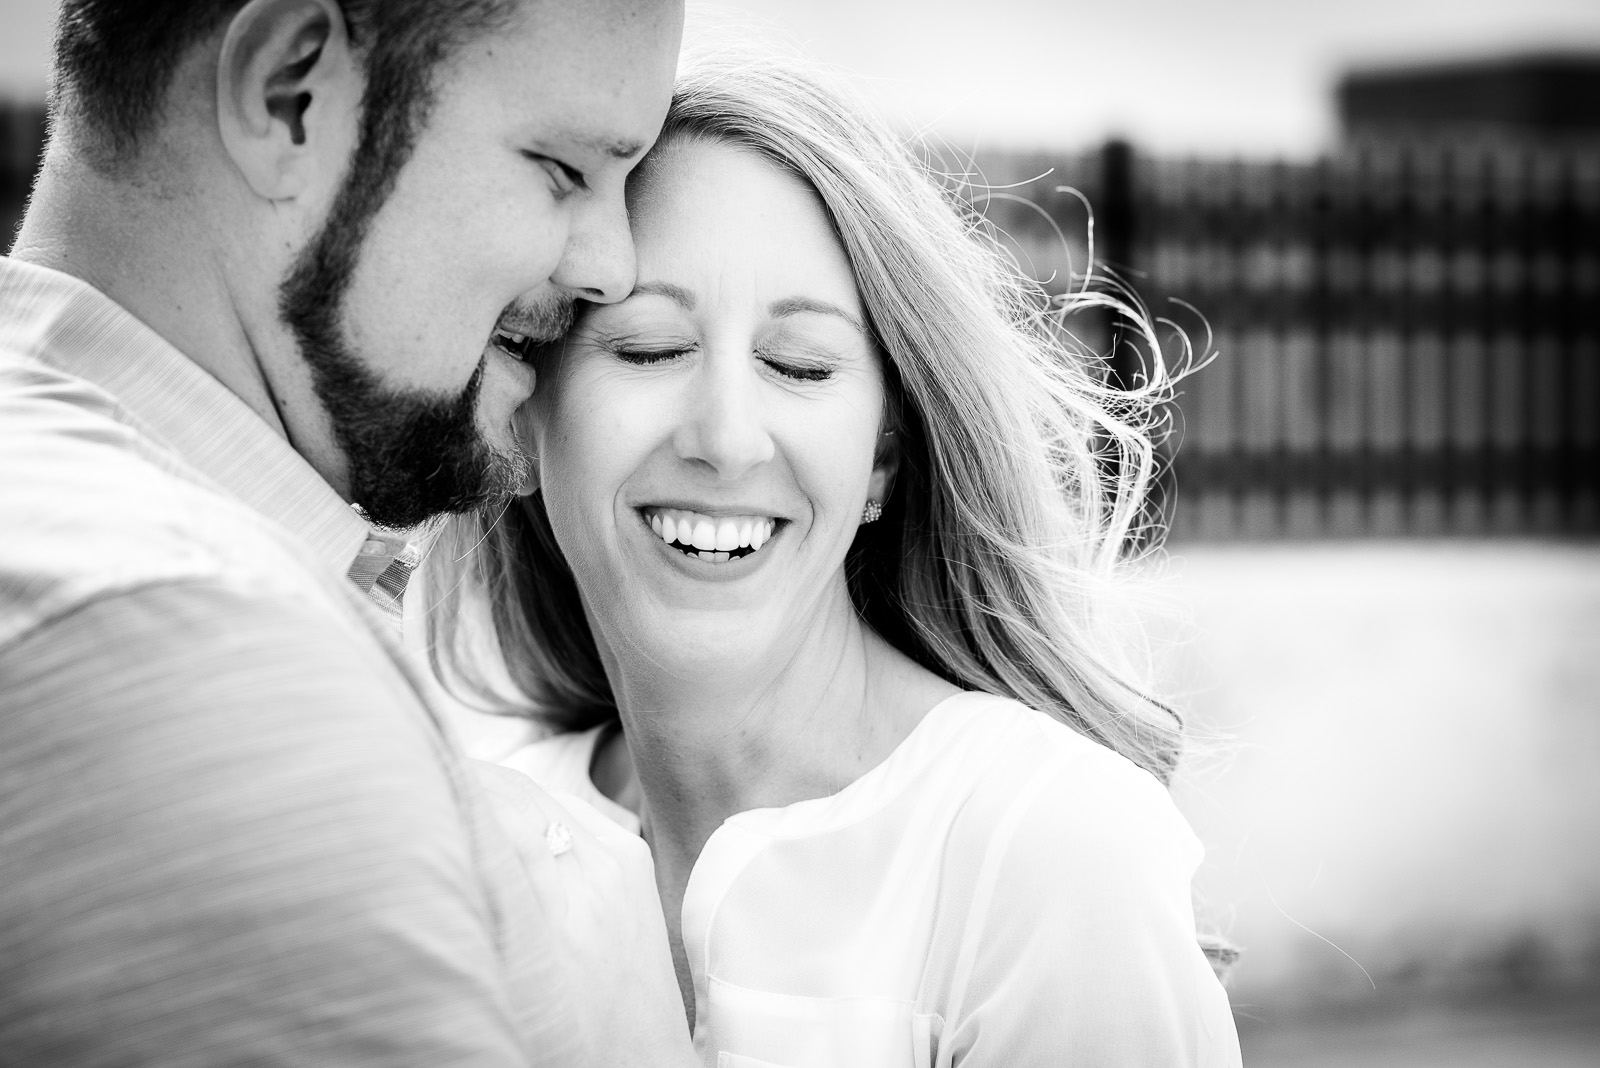 Eric_and_Christy_Photography_Blog_2017_Best_Engagement-2